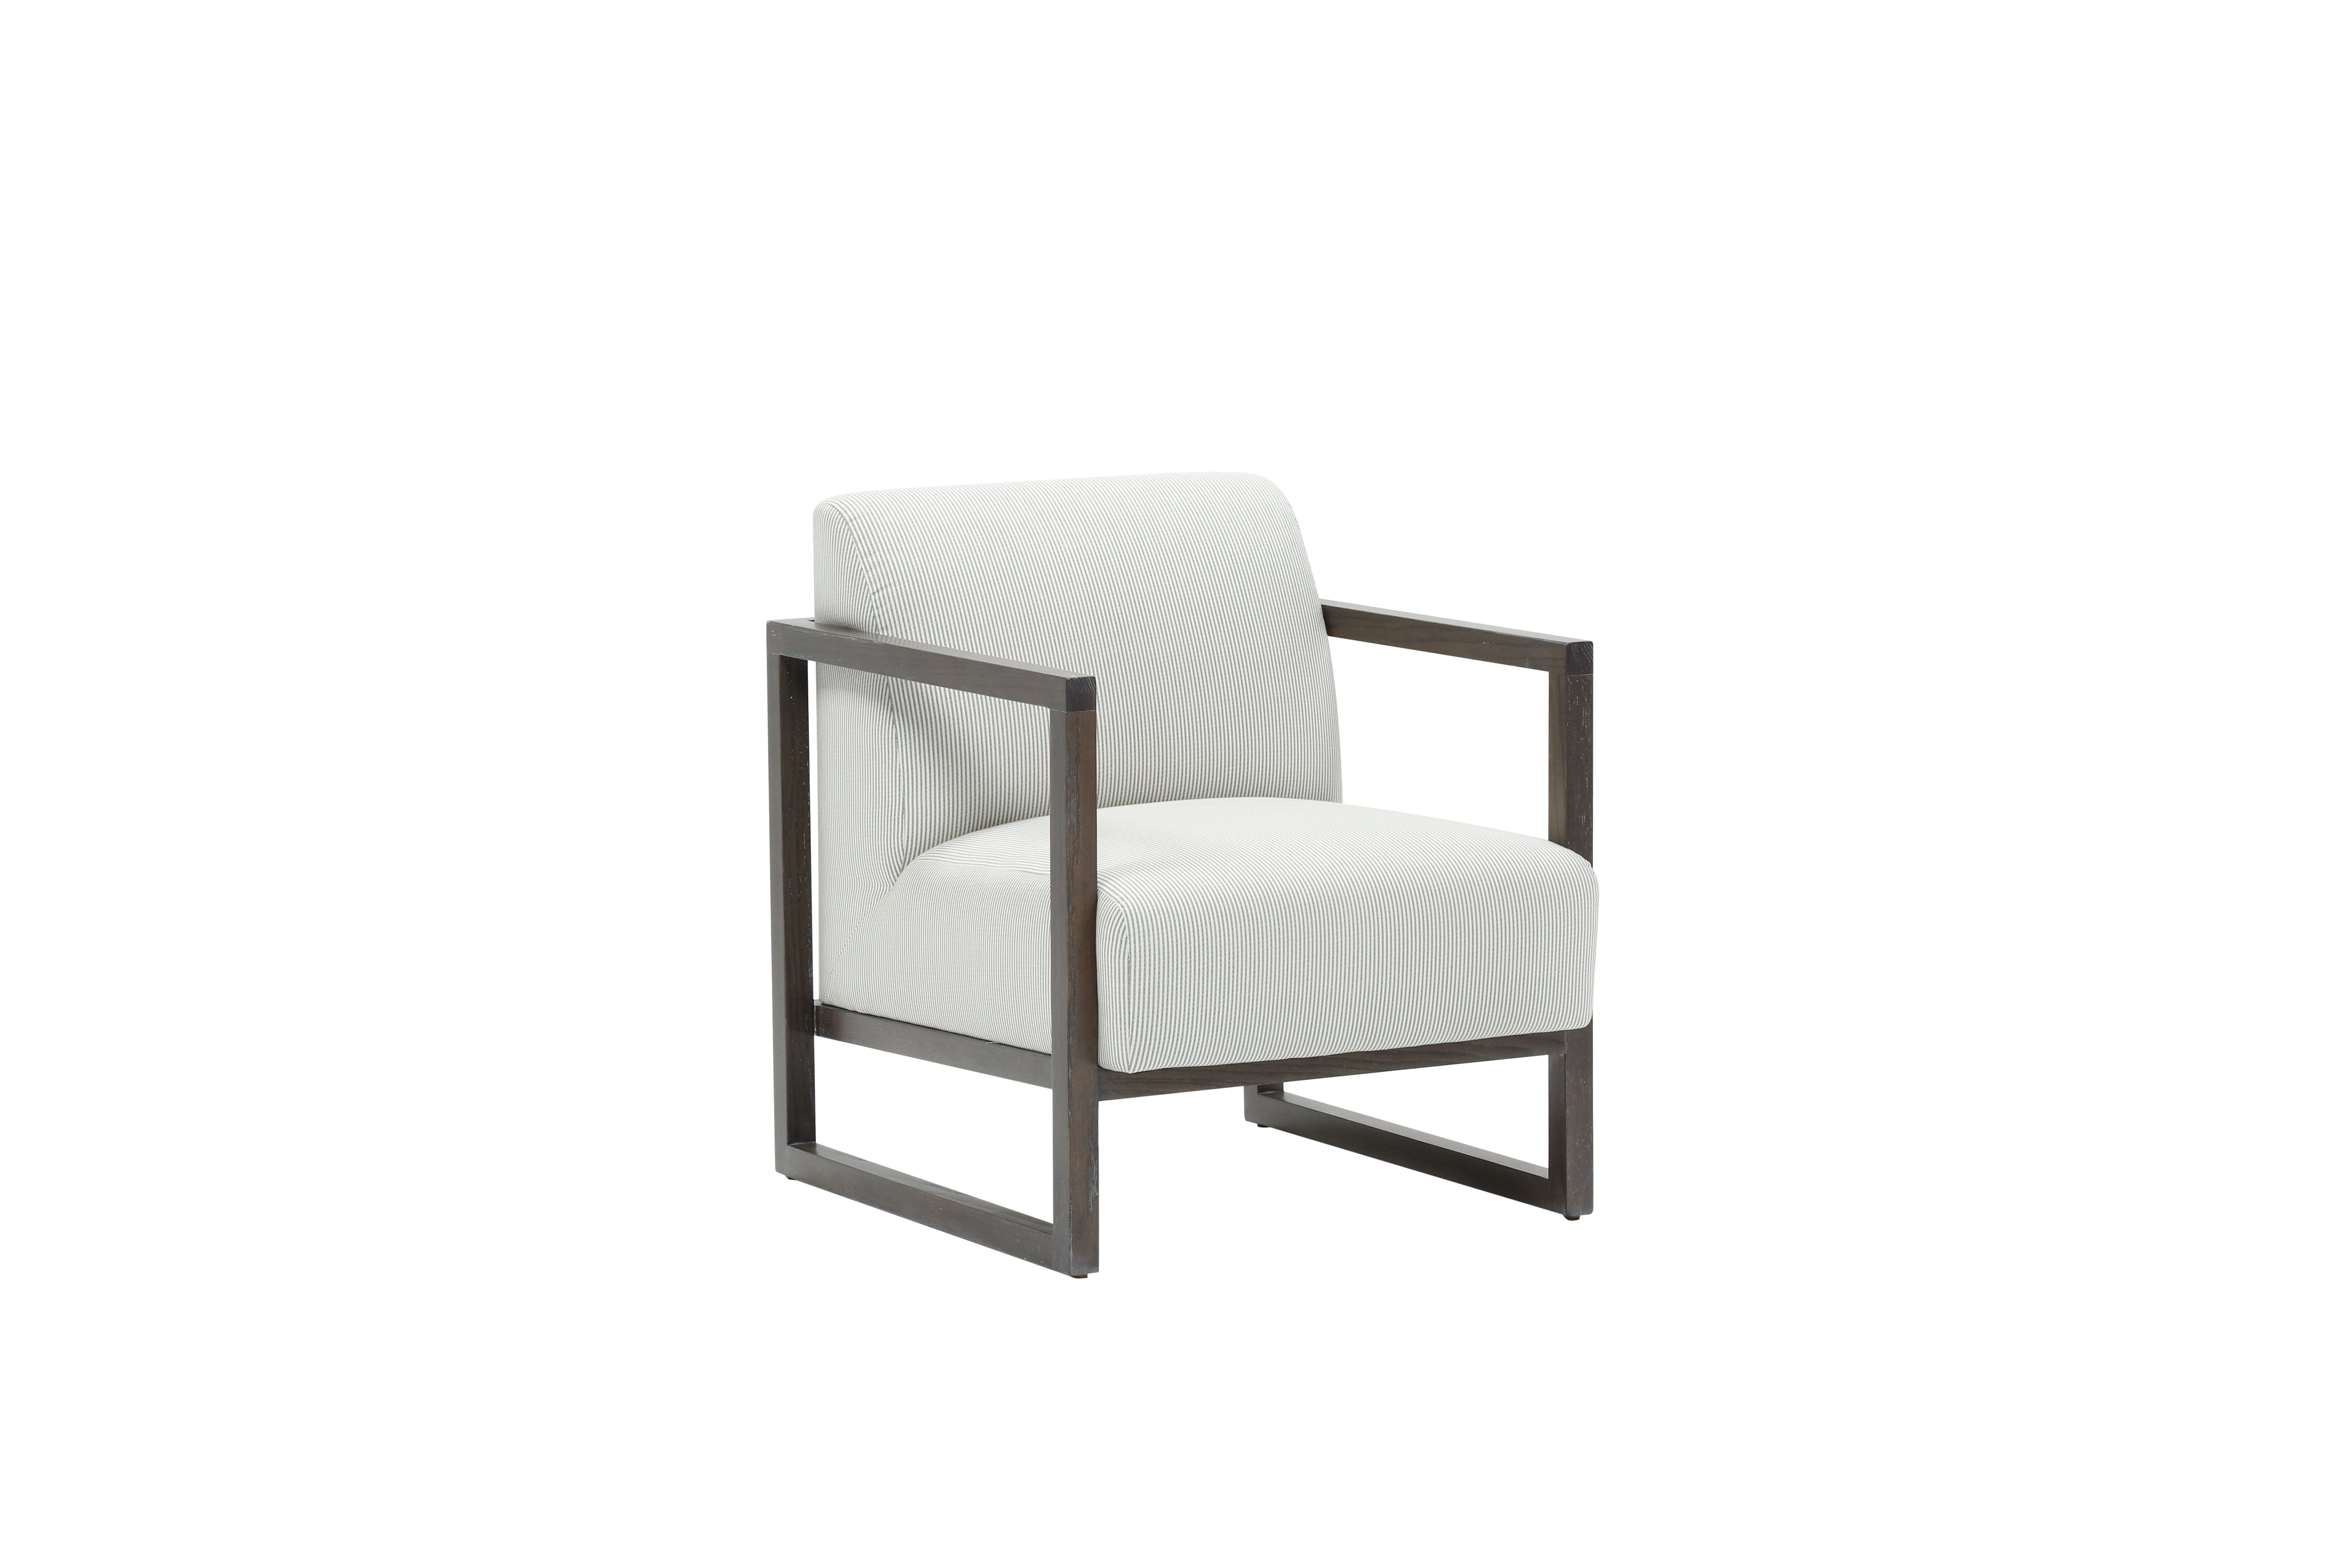 Nate Berkus Just Launched A Home Collection With Hubby Jeremiah Within Matteo Arm Sofa Chairs By Nate Berkus And Jeremiah Brent (View 17 of 25)